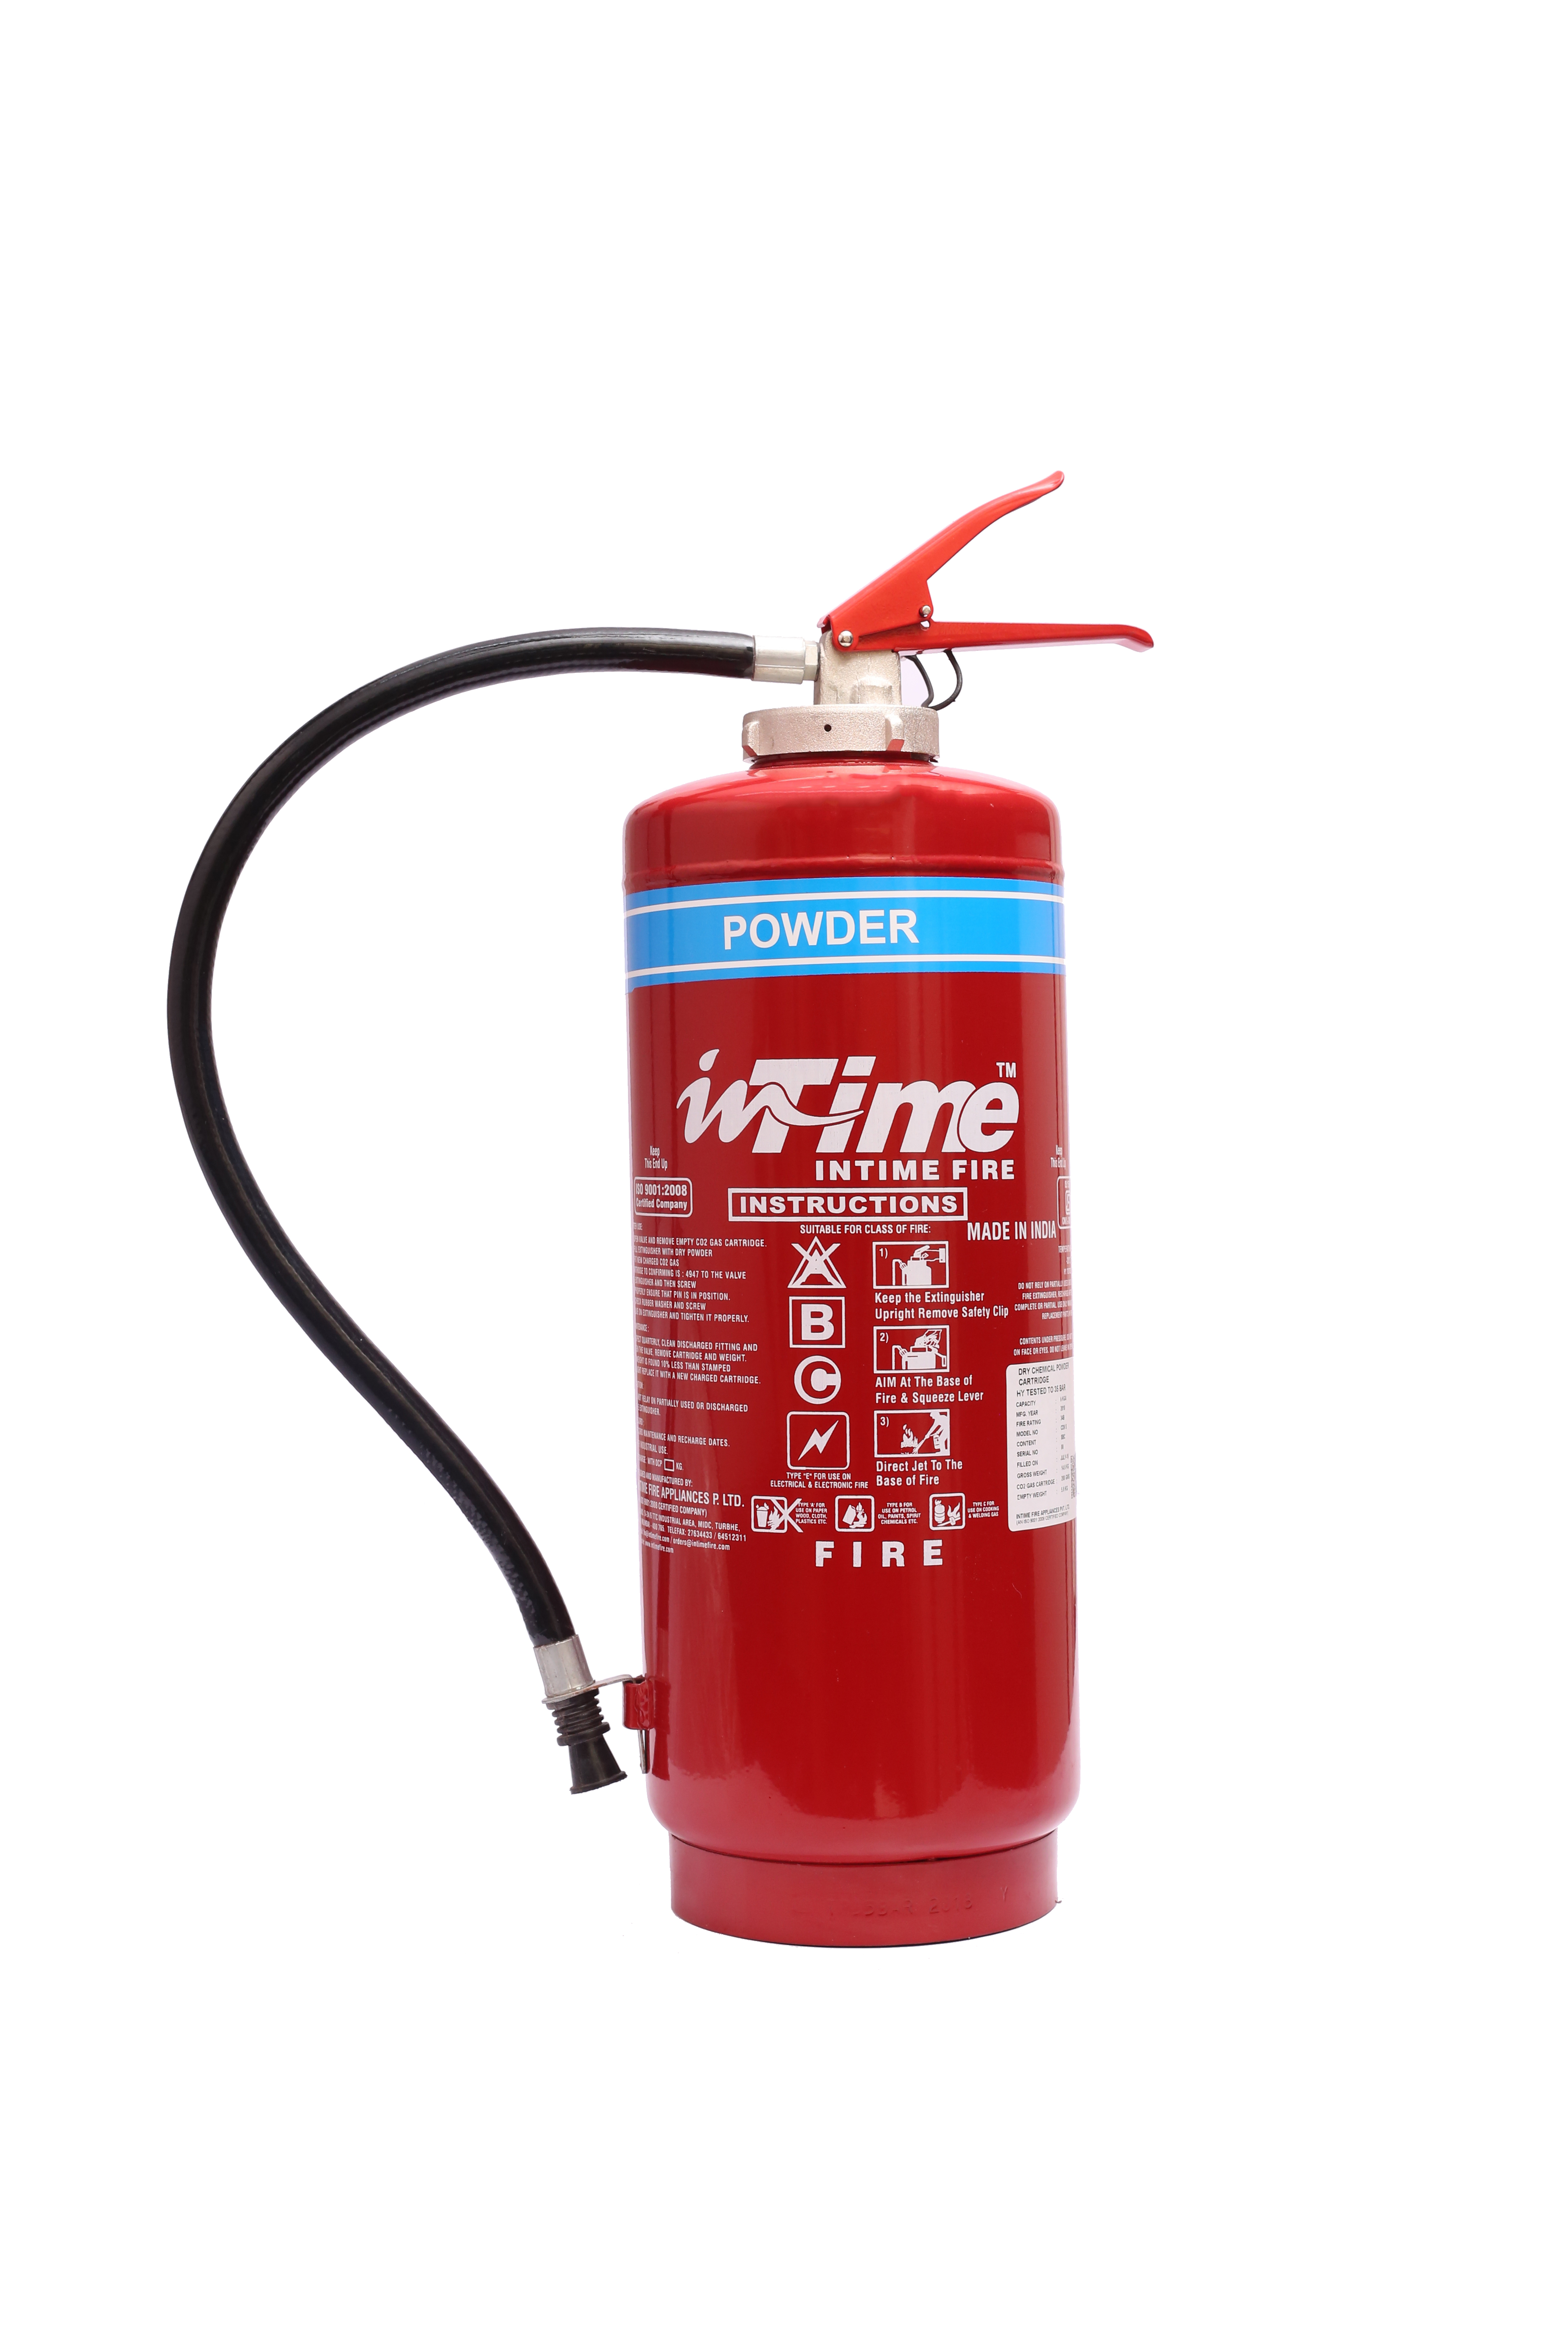 Cartridge Operated Powder Fire Extinguishers